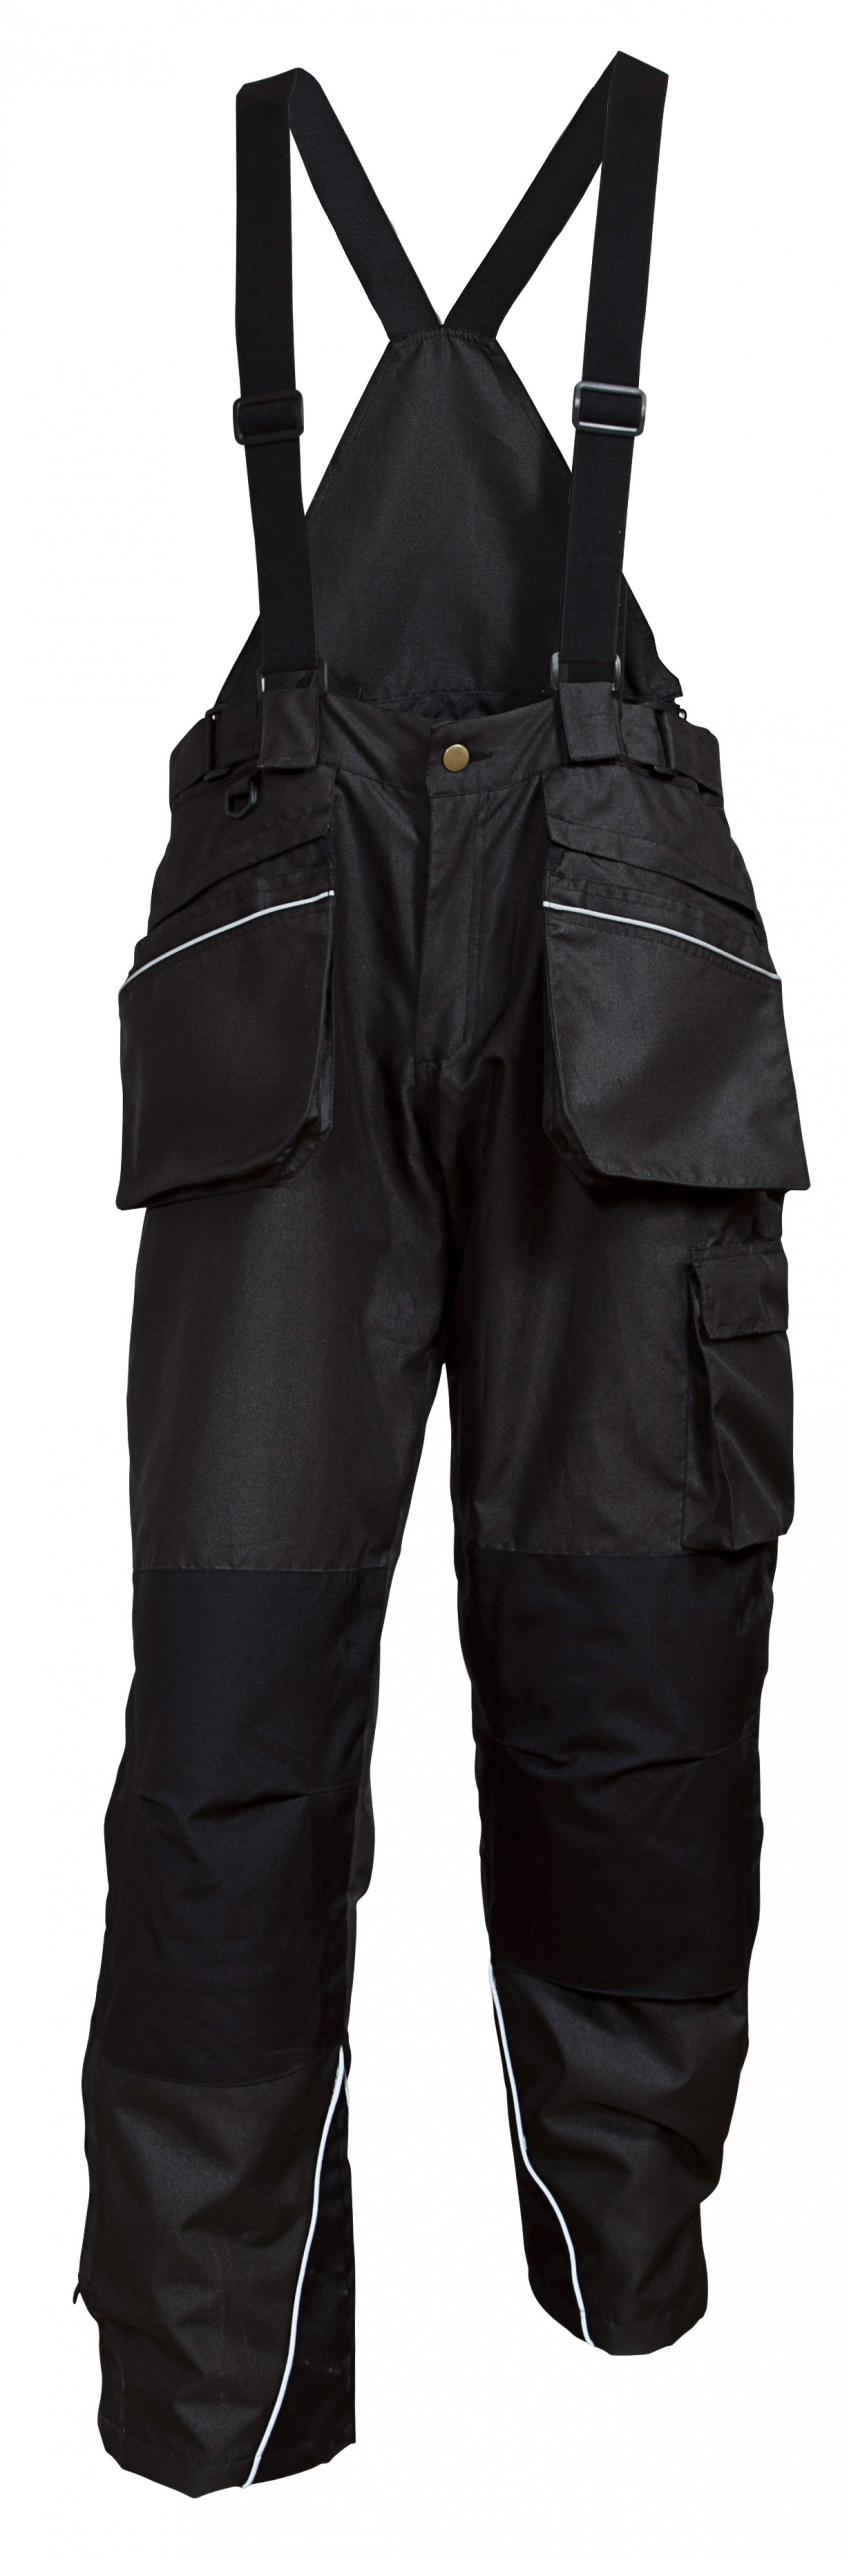 082403010L - Working Xtreme Combi Trousers Image